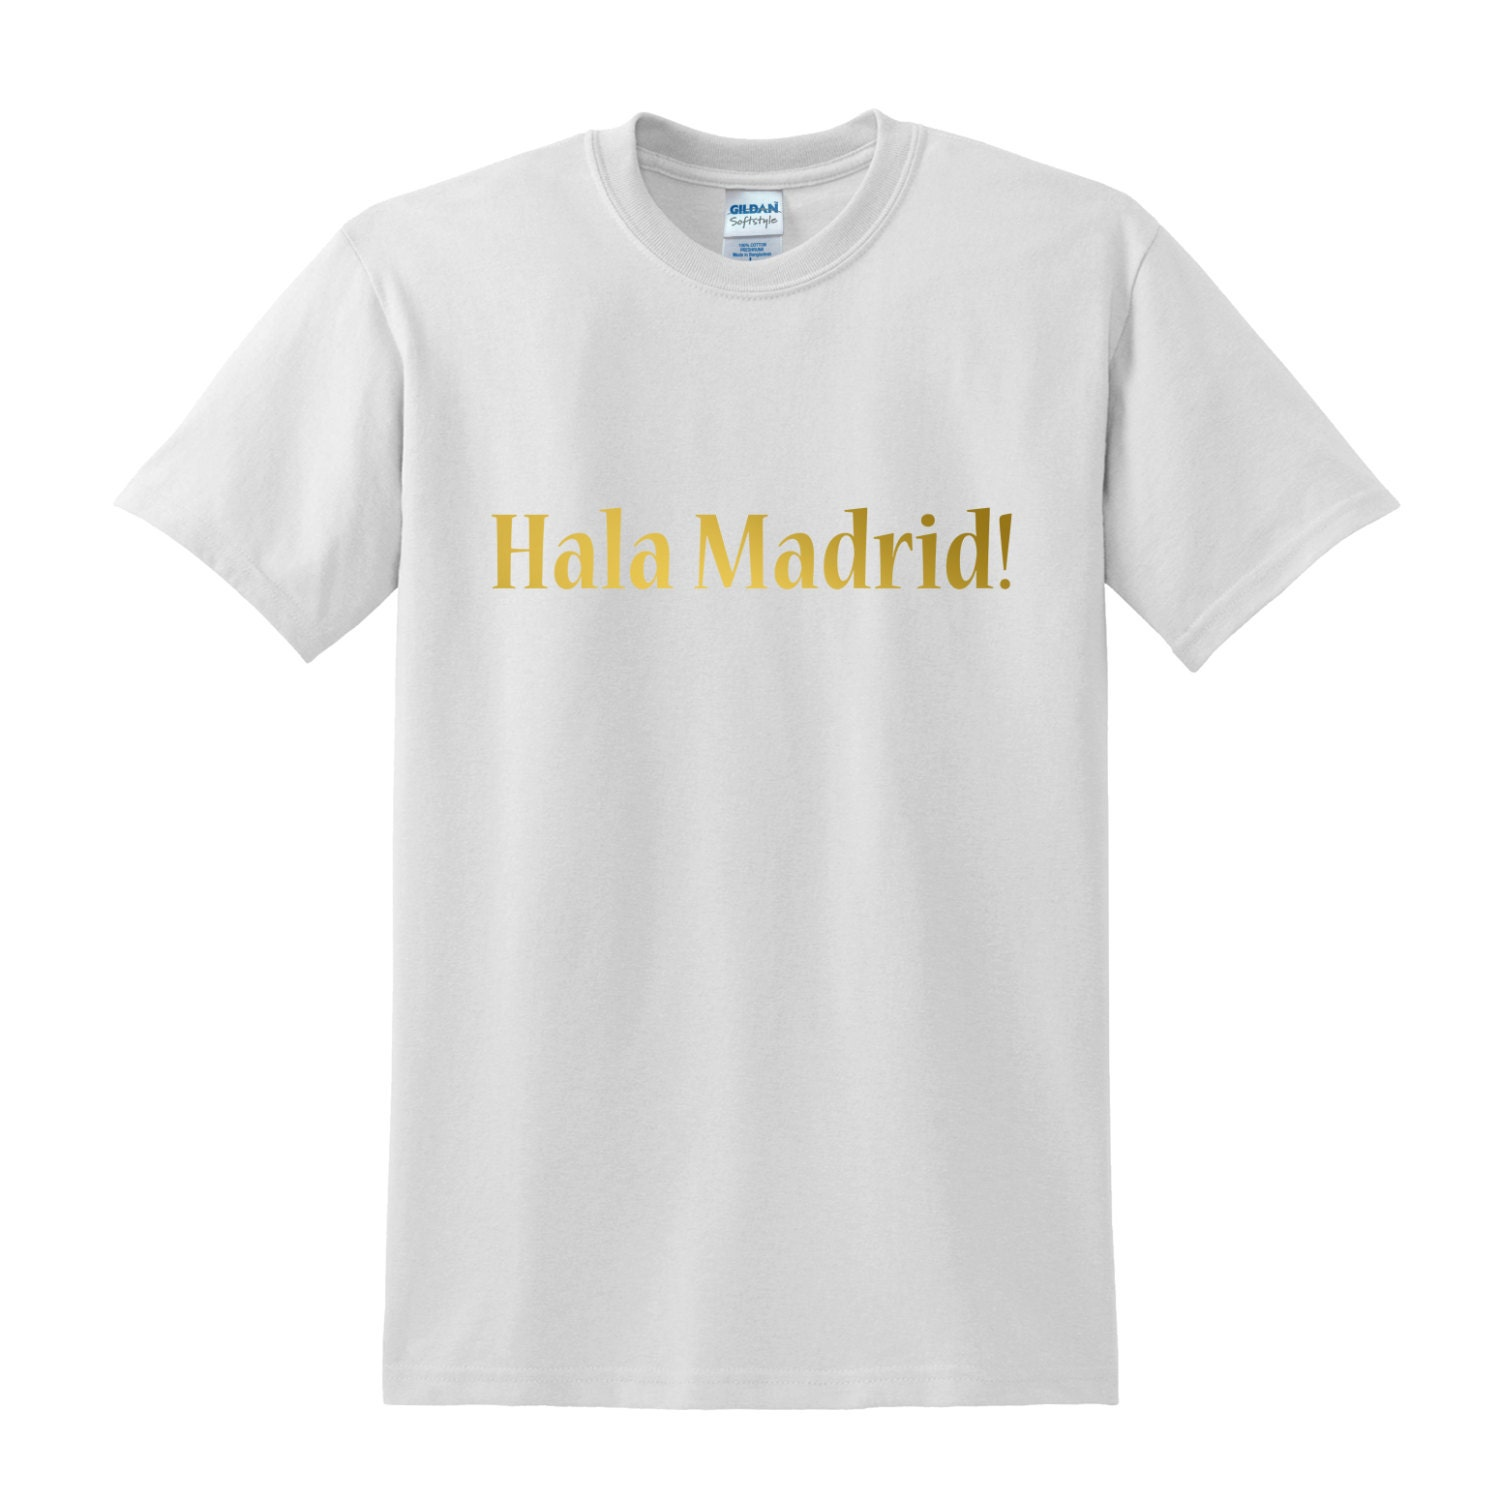 Hala Madrid Gold Print Slogan T Shirt Menswear By